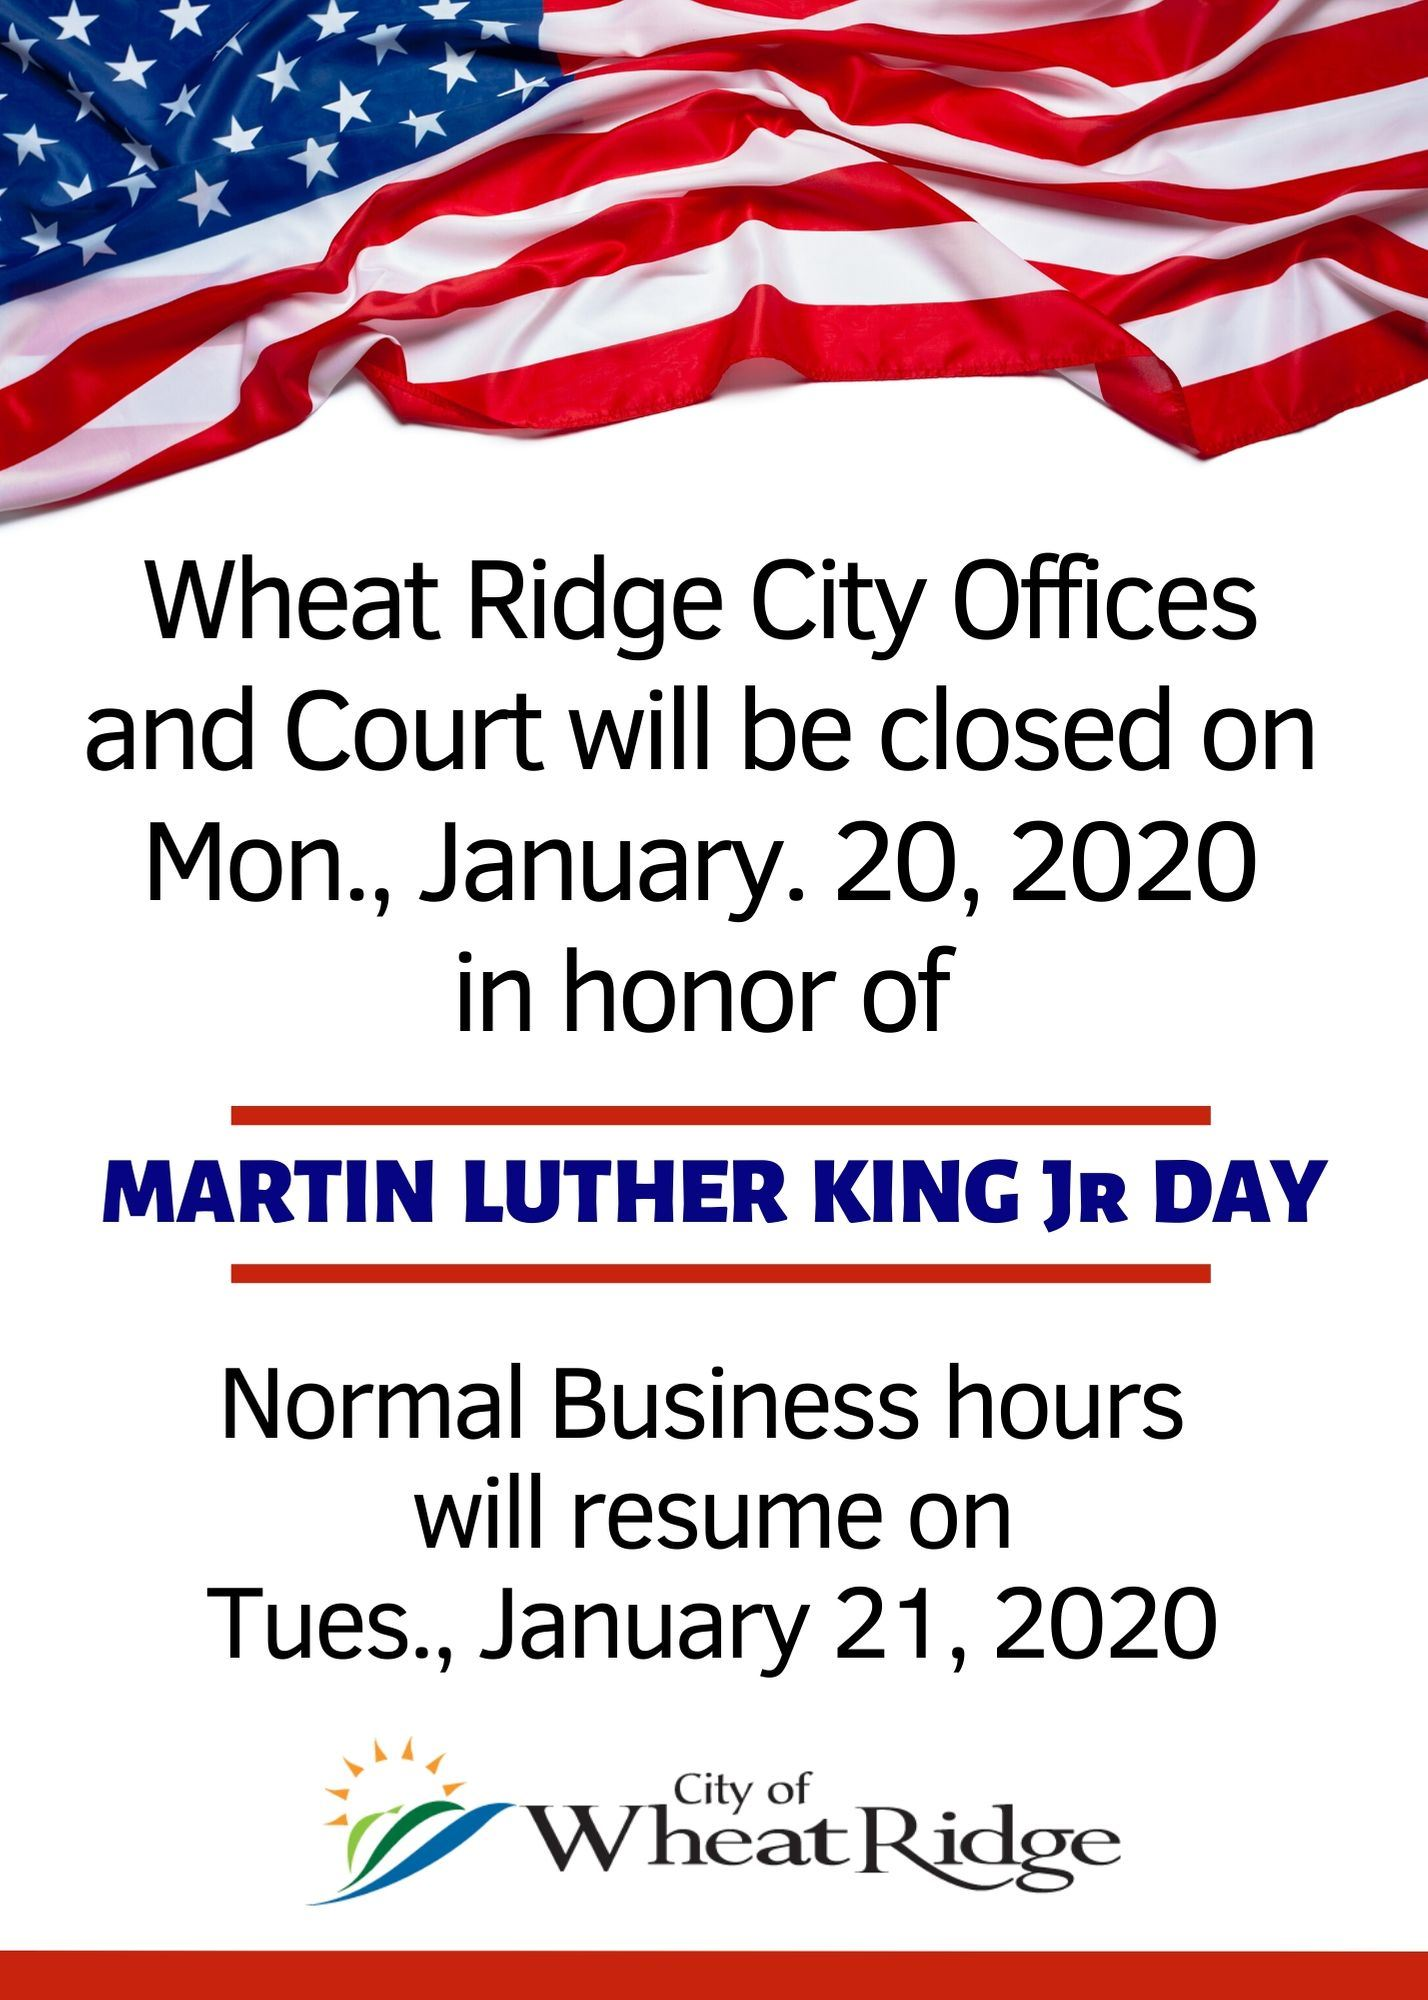 MLK Jr Closure Information